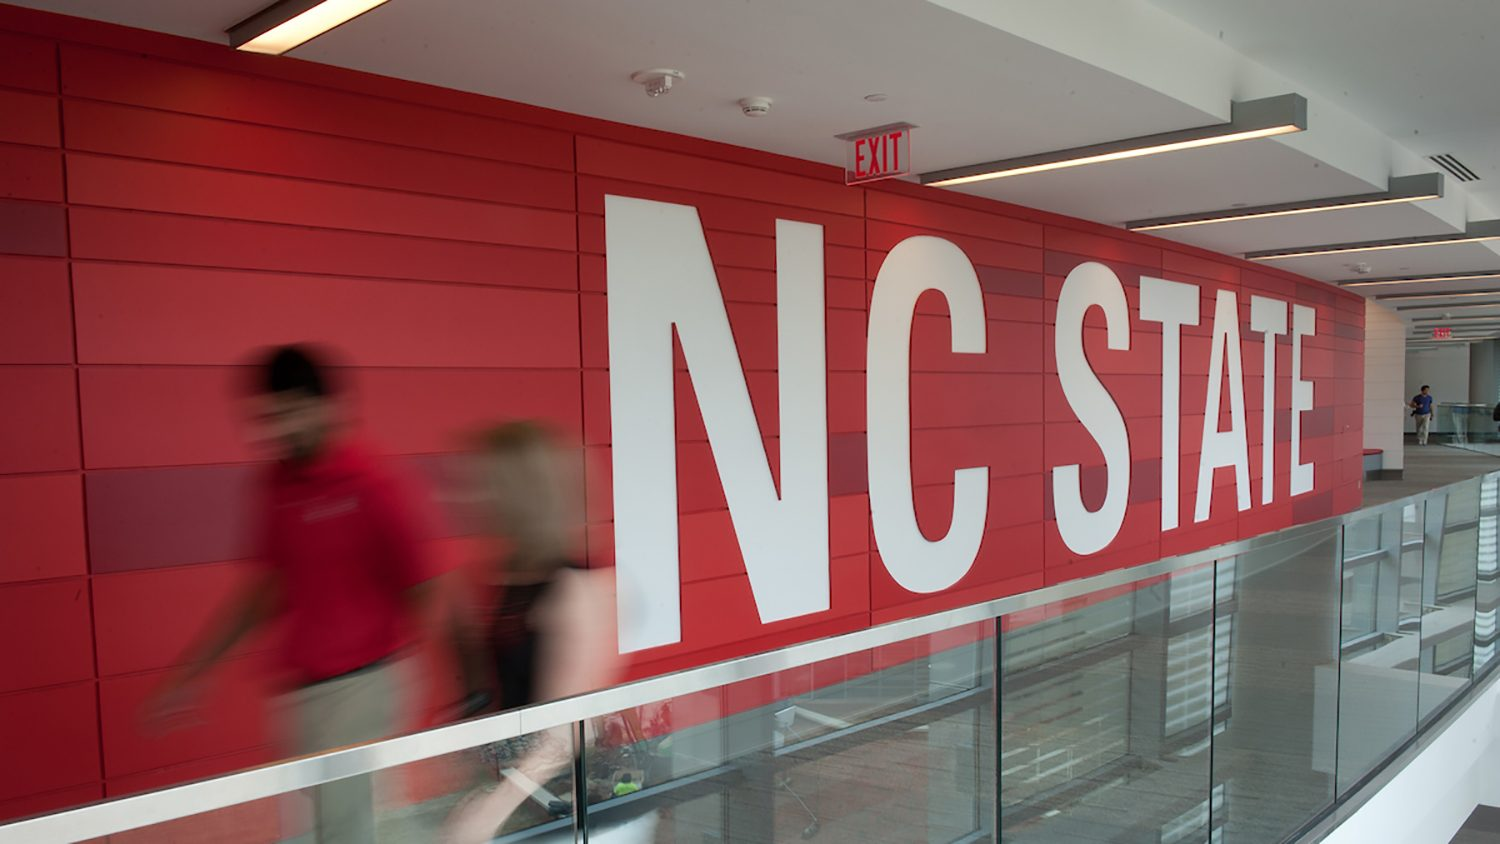 NC State sign in Talley Student Union